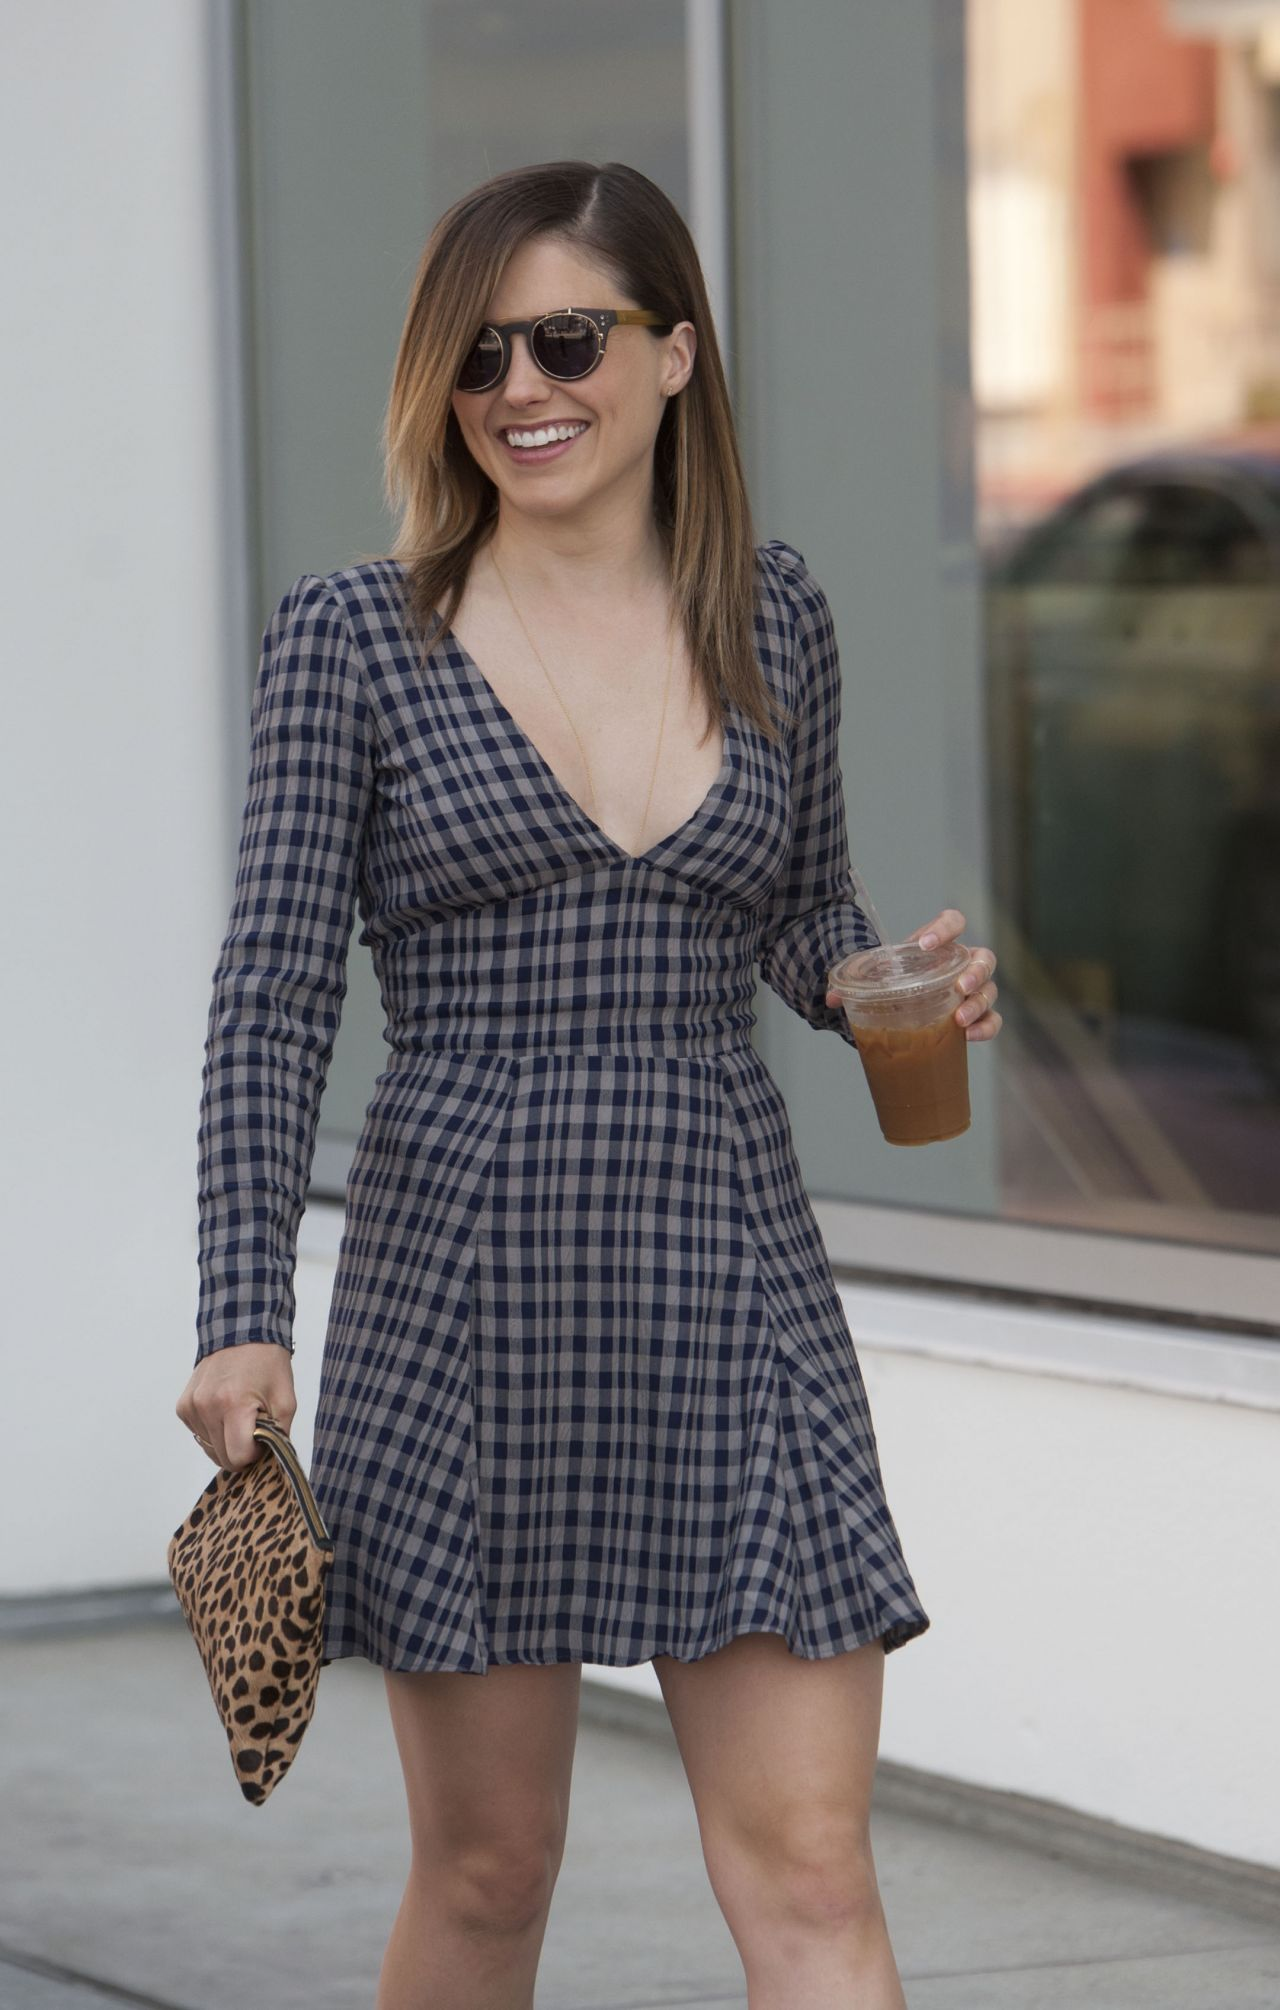 Sophia Bush in Mini Dress - Out in Los Angeles - April 2014